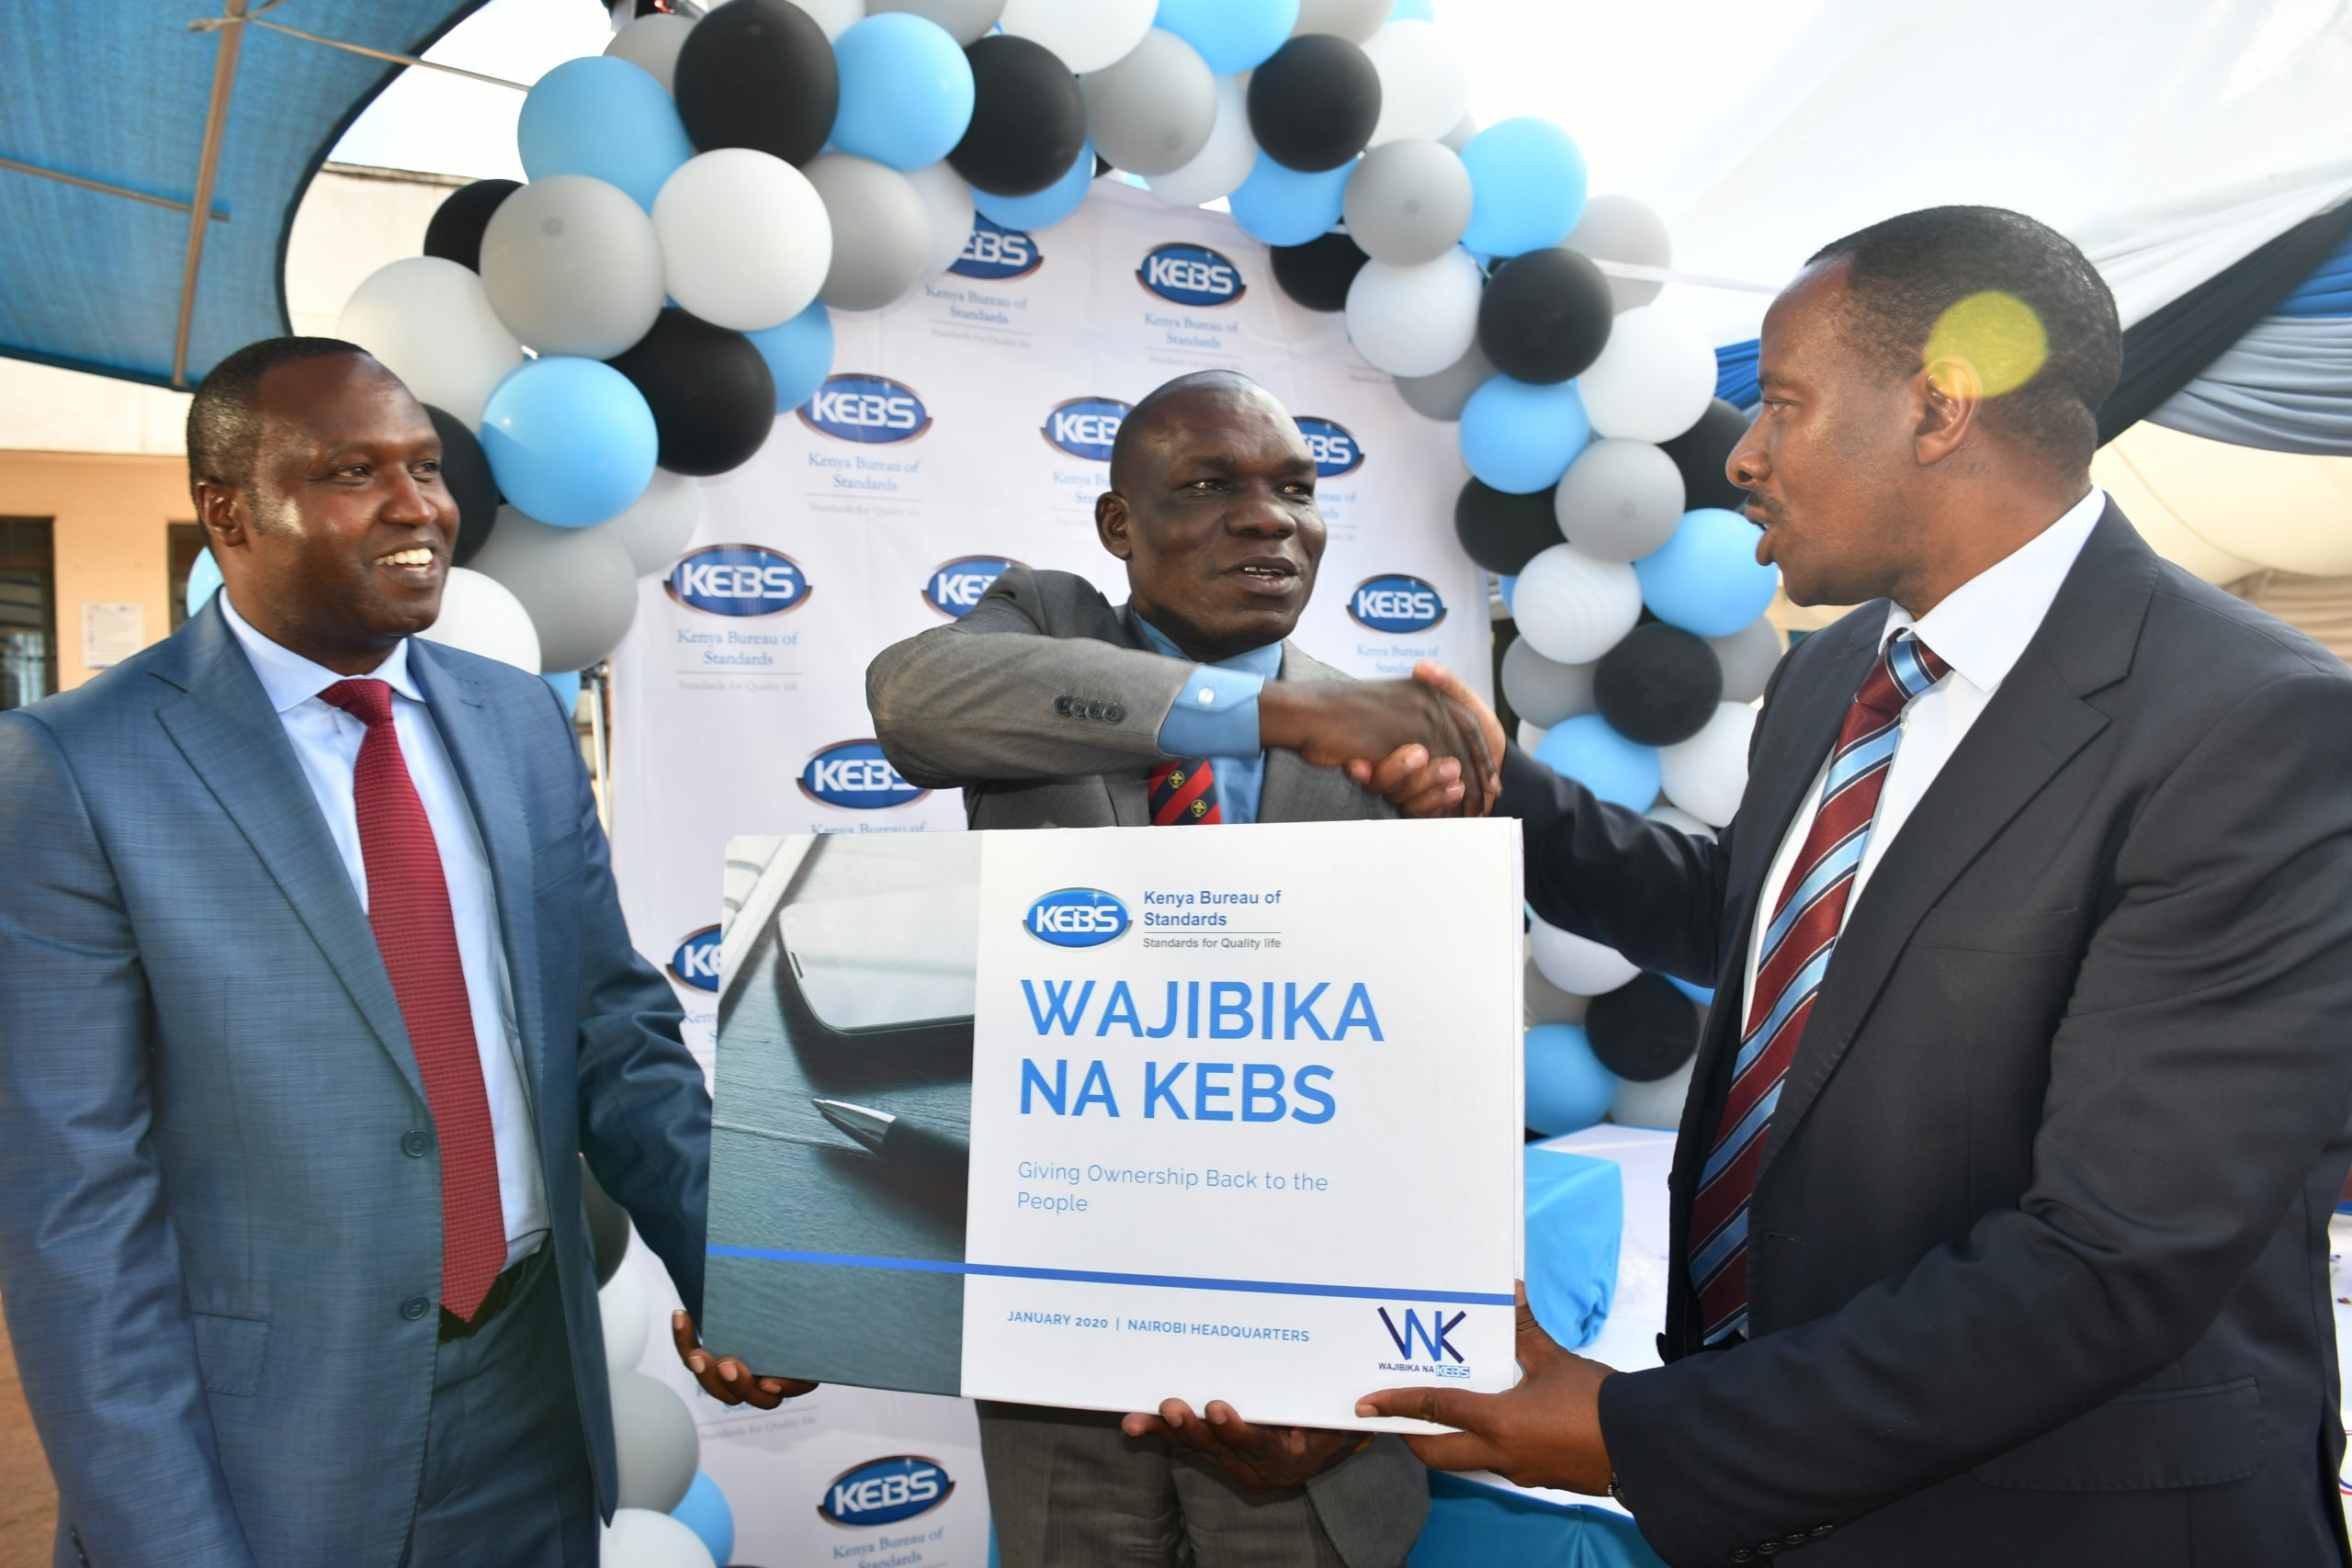 Industrilization PS Dr. Francis O. Owino (centre) joined by KEBS National Standards Council Chair Eng. Bernard Ngore (Left) and Lt. Col. (Rtd) Bernard Njiraini during the launch. www.businesstoday.co.ke